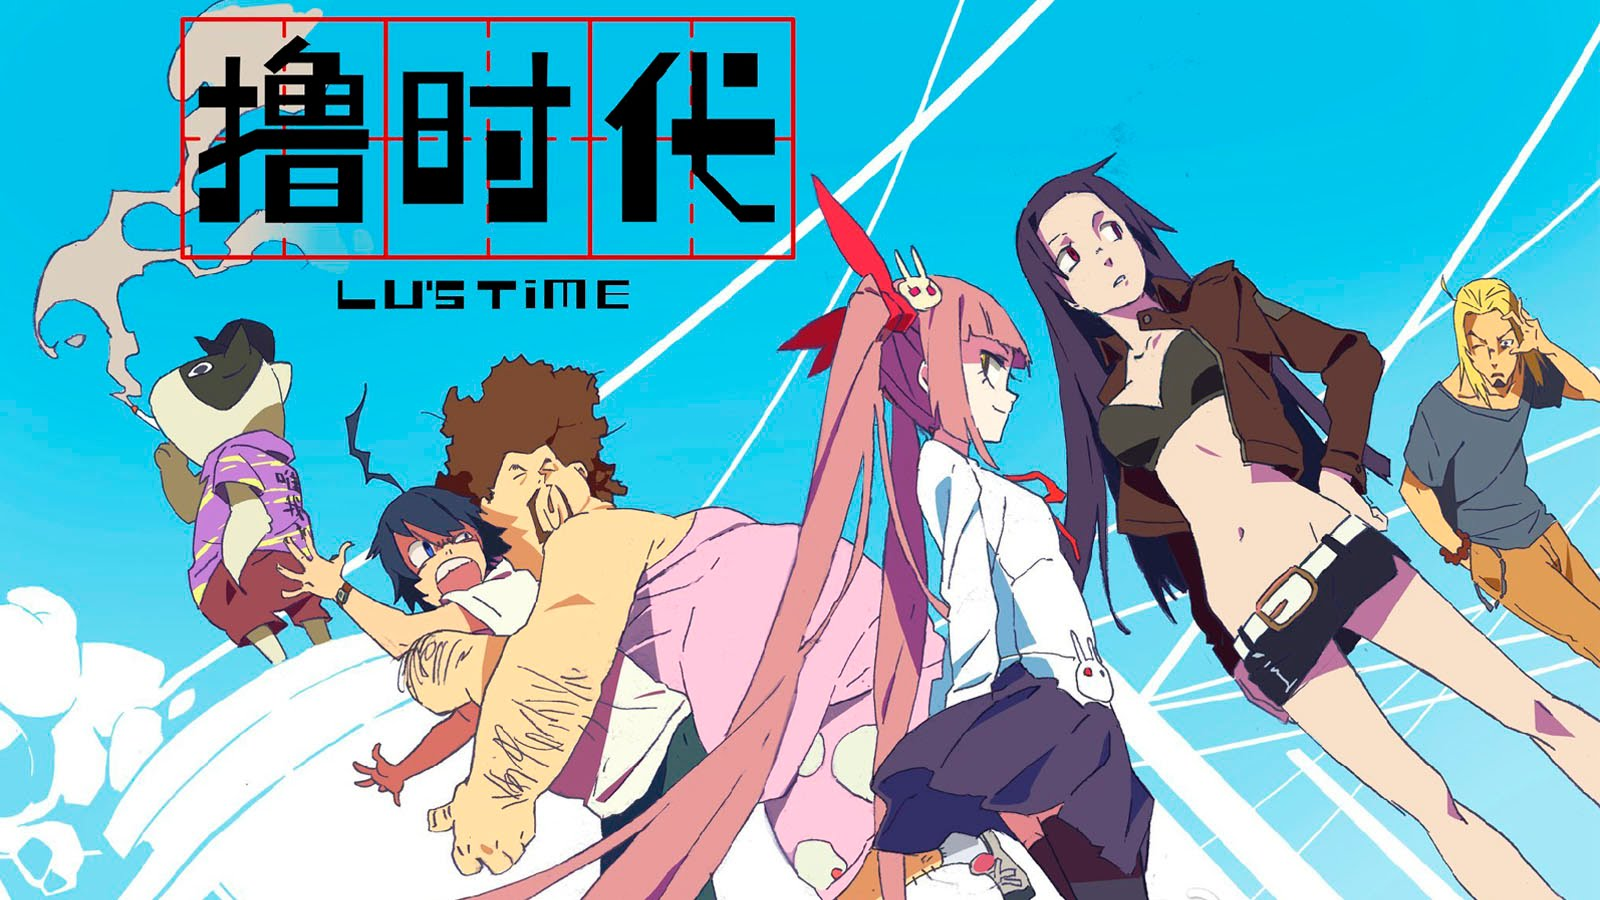 Lus time chinese anime